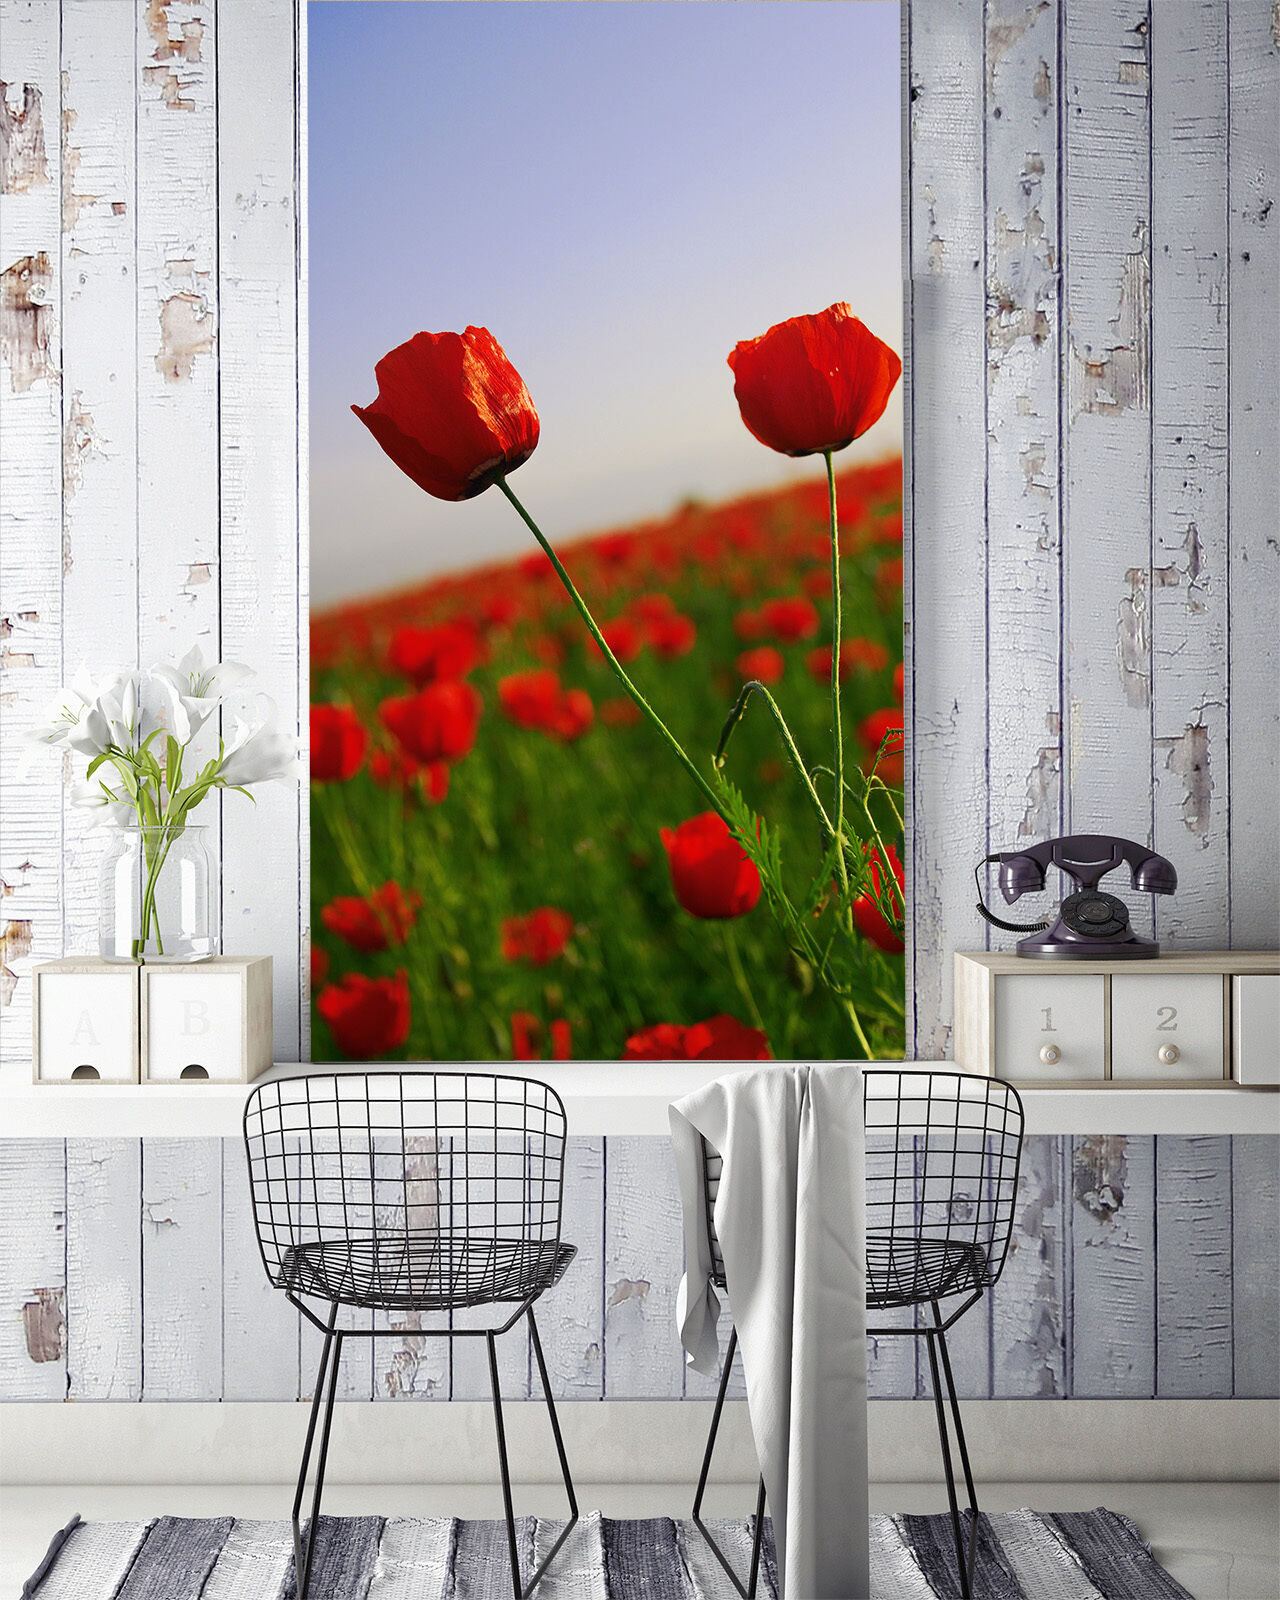 3D Bright ROT Flowers 8 Wall Paper Wall Print Decal Wall Deco Wall Indoor Murals